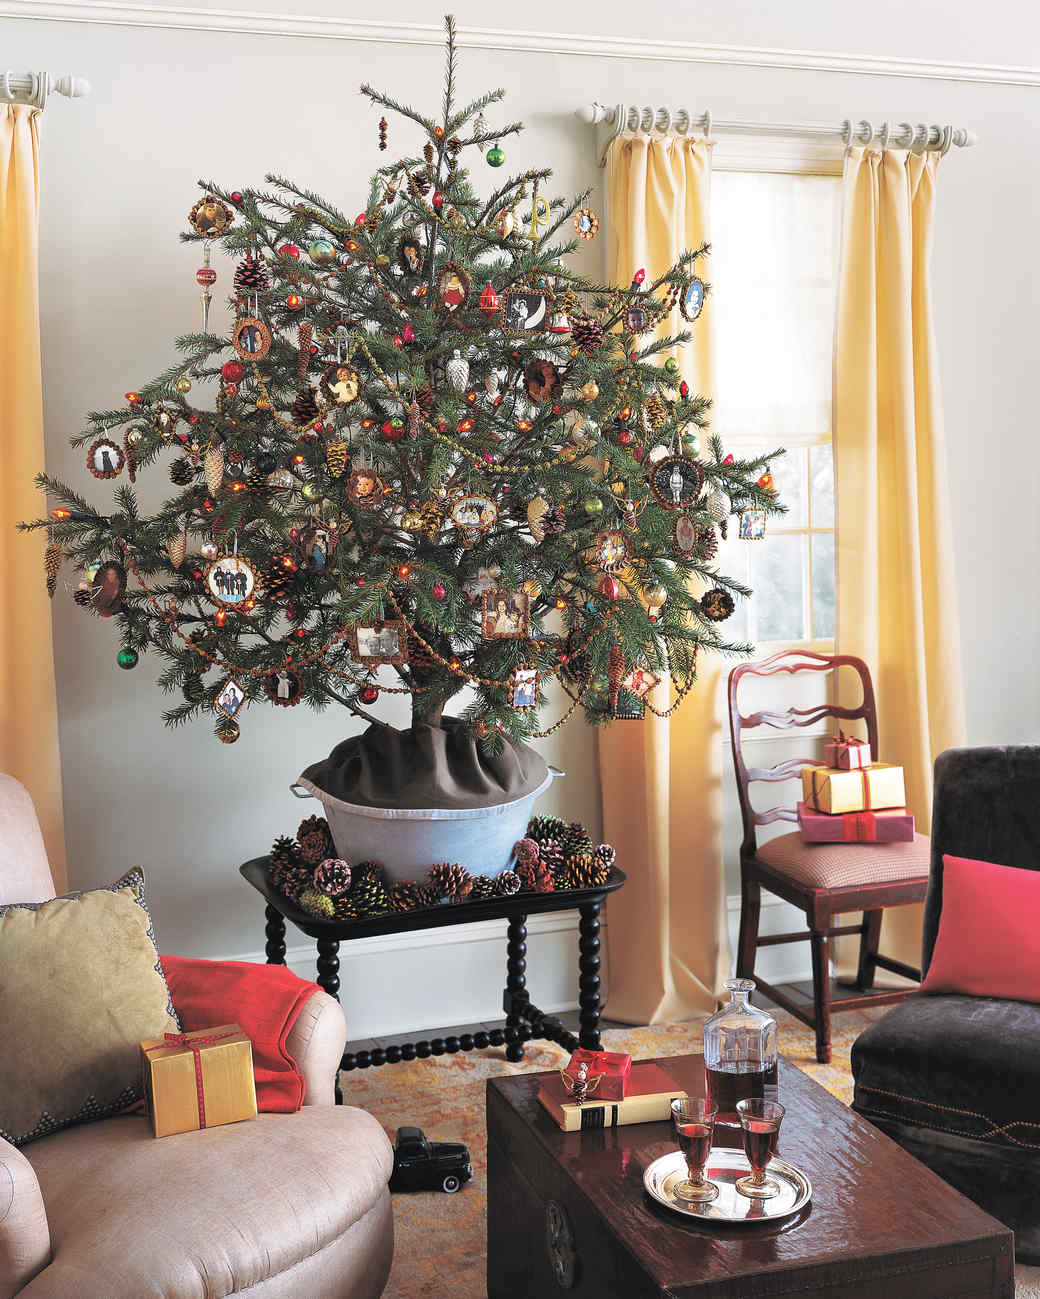 25 Creative Christmas Tree Decorating Ideas